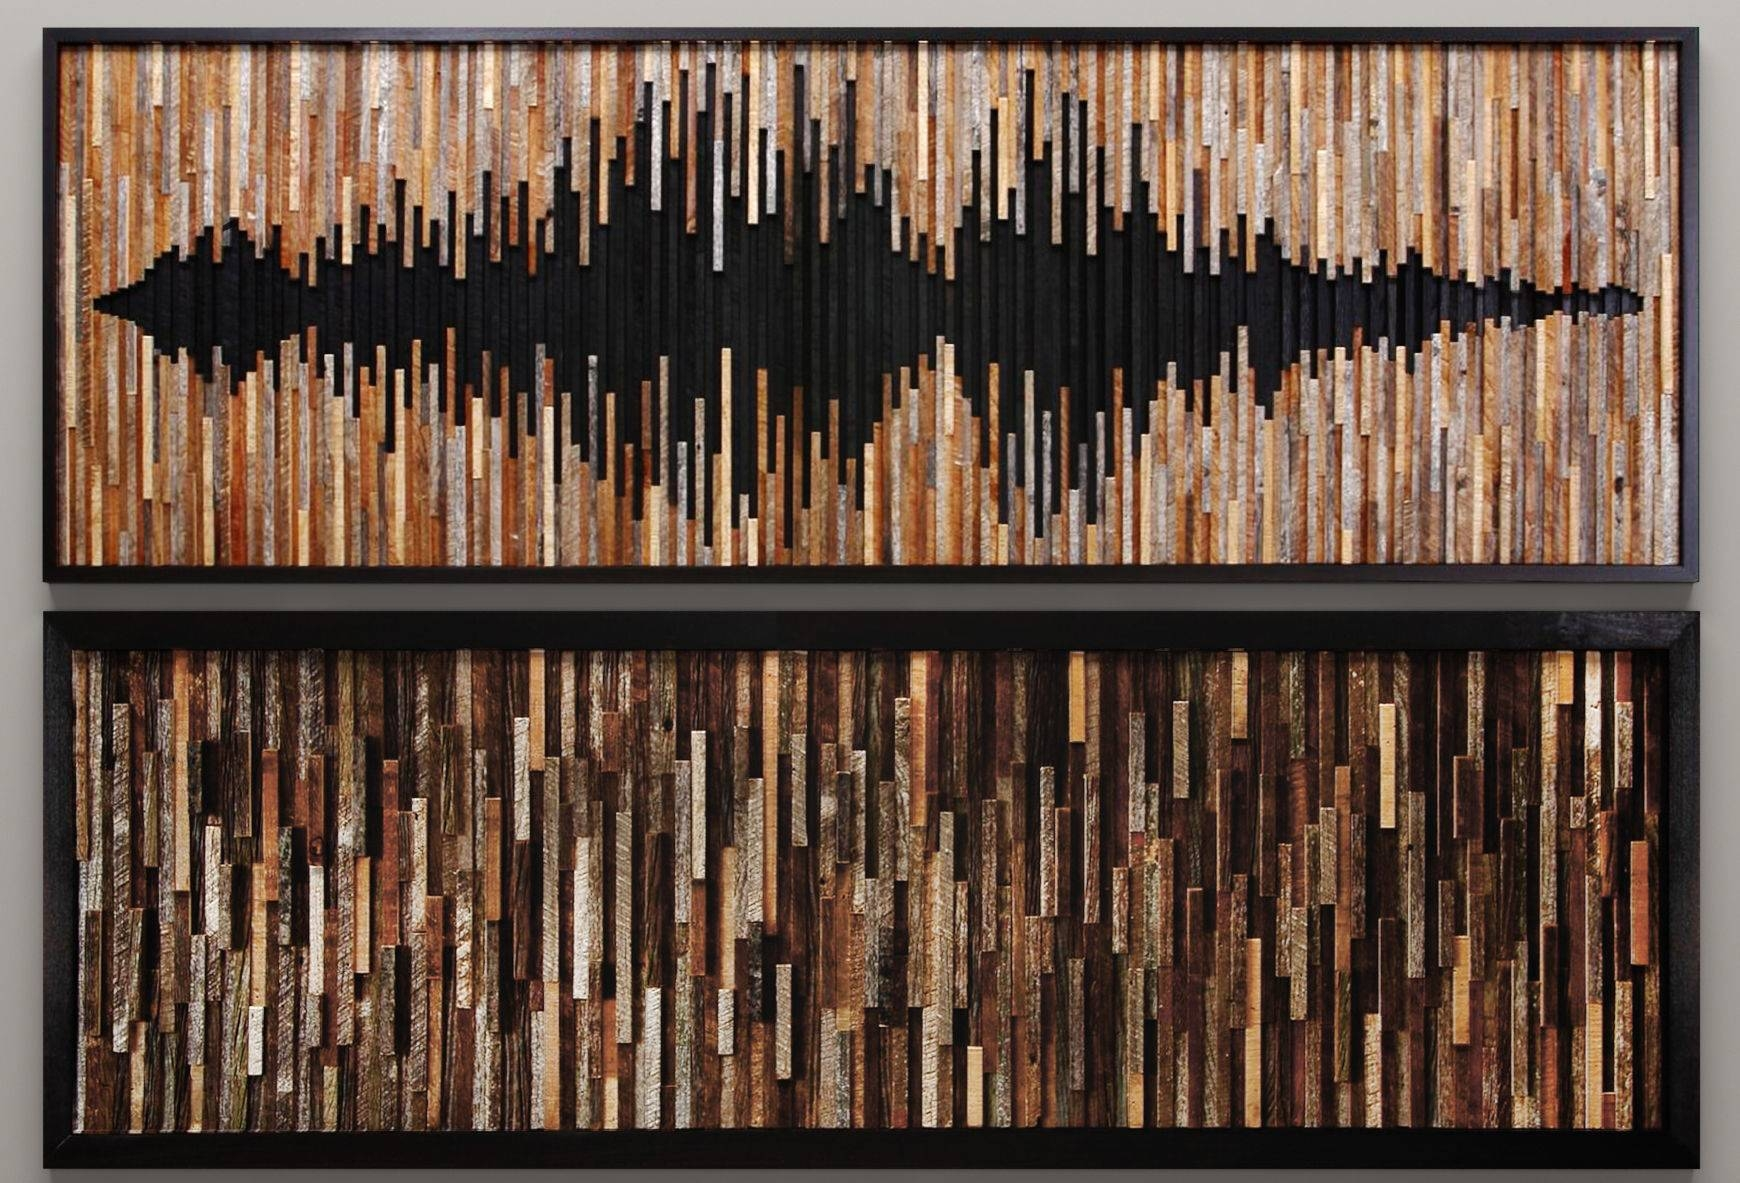 Wood Wall Art 46 3d Model | Cgtrader With Regard To Newest Wood 3d Wall Art (View 2 of 20)